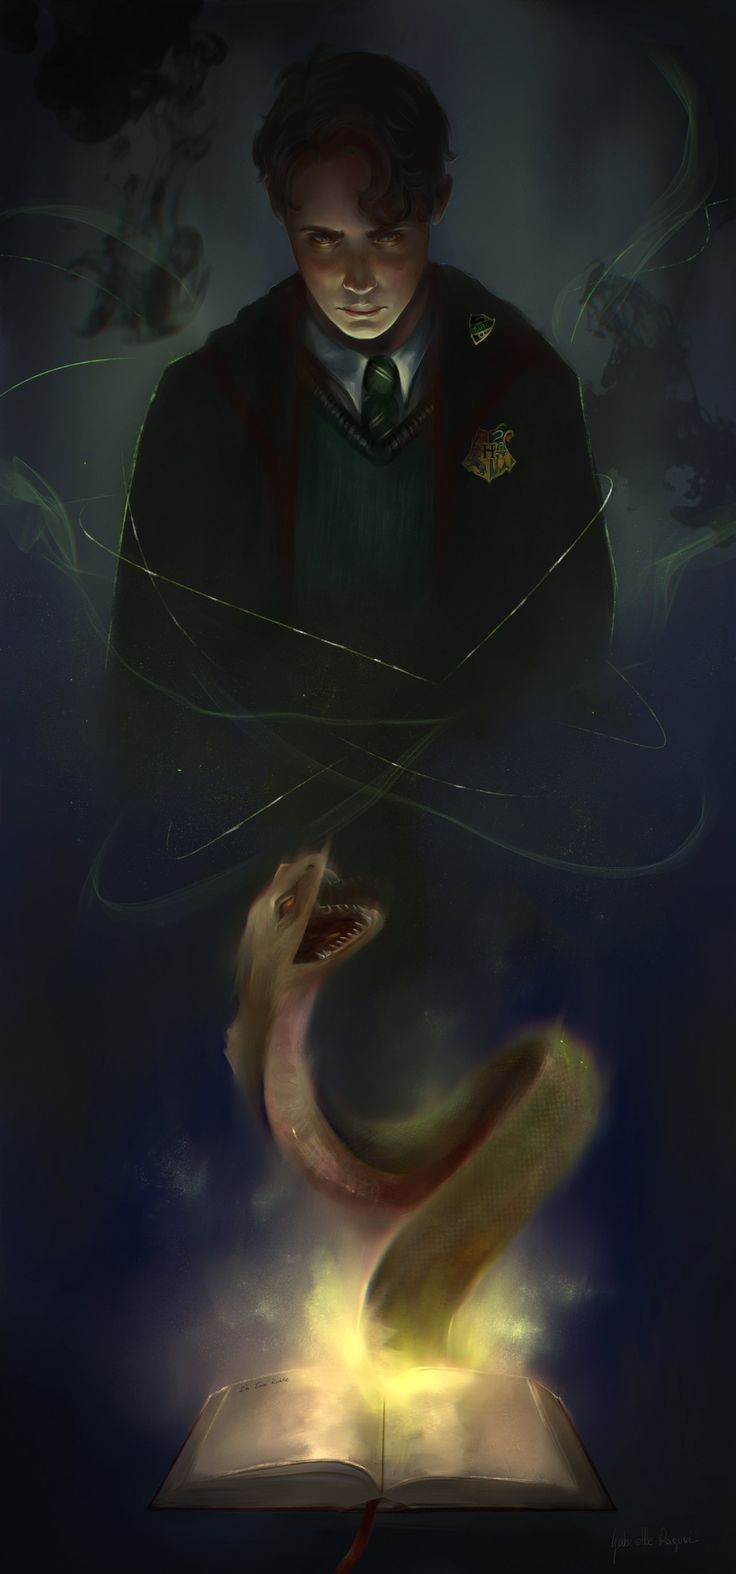 My name is Tom Riddle by gabrielleragusi